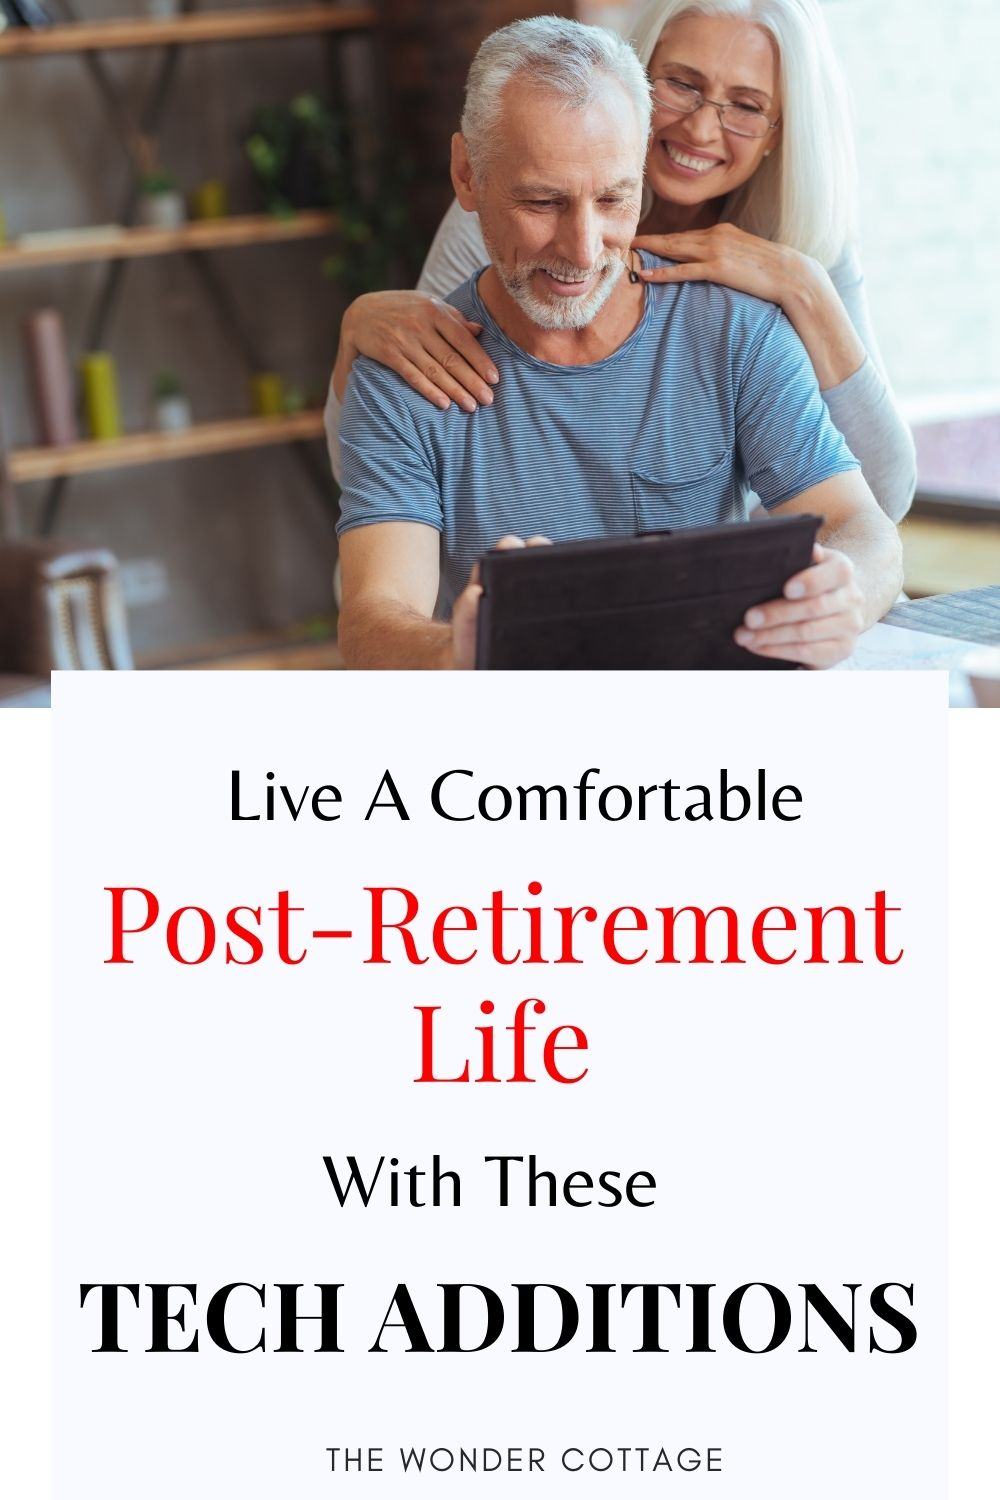 live a comfortable post-retirement life with these tech additions